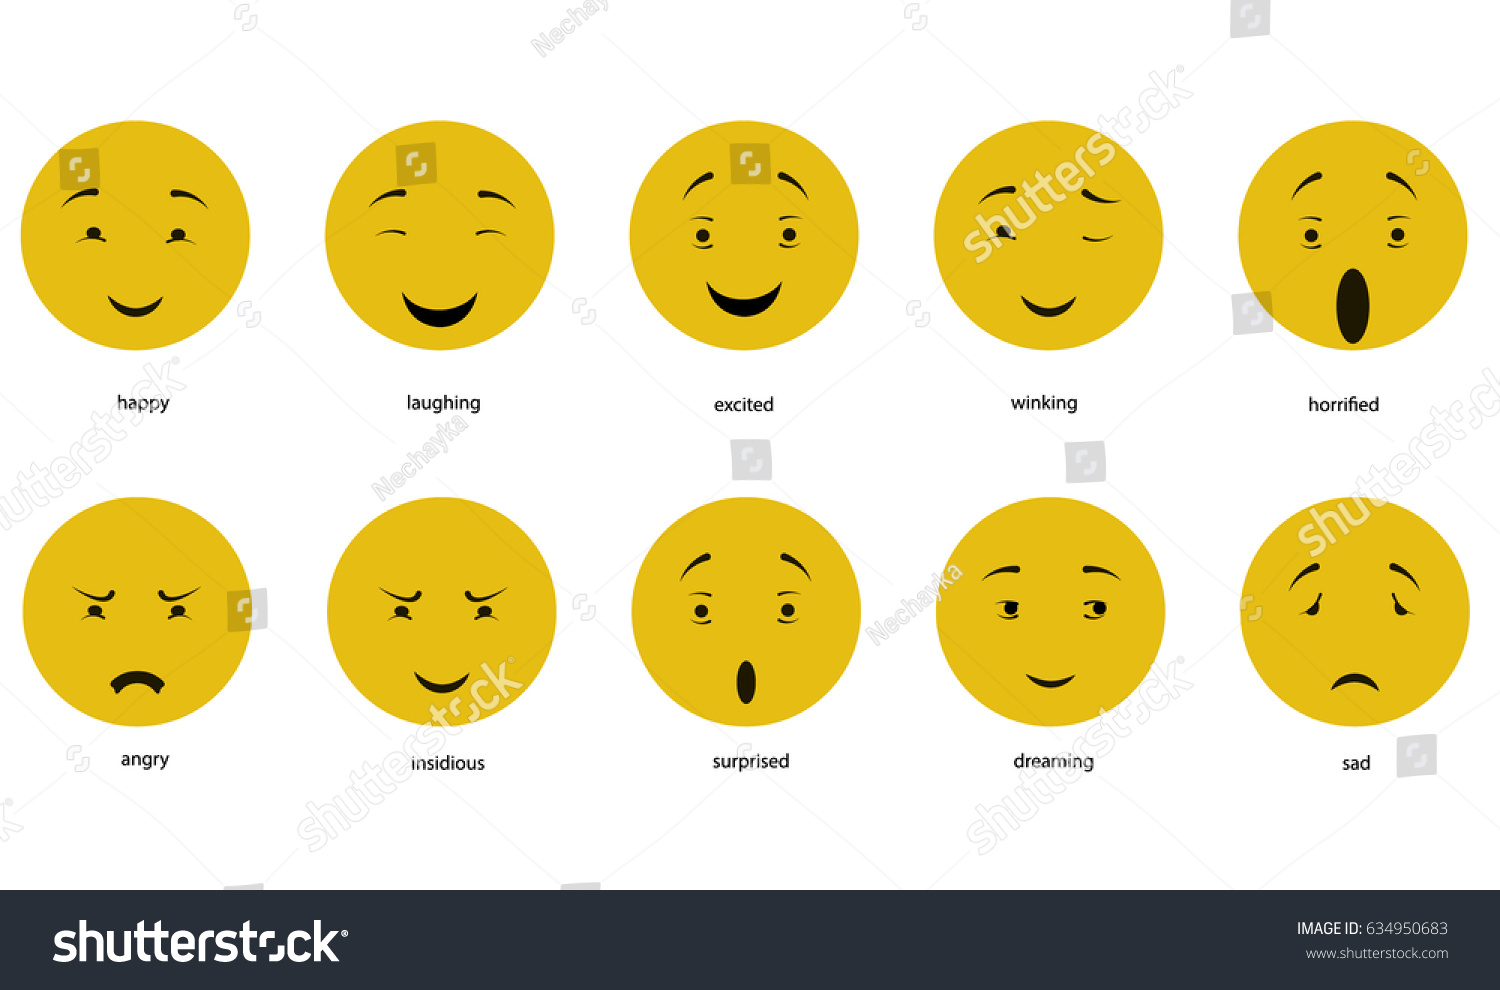 Chart of facial expressions